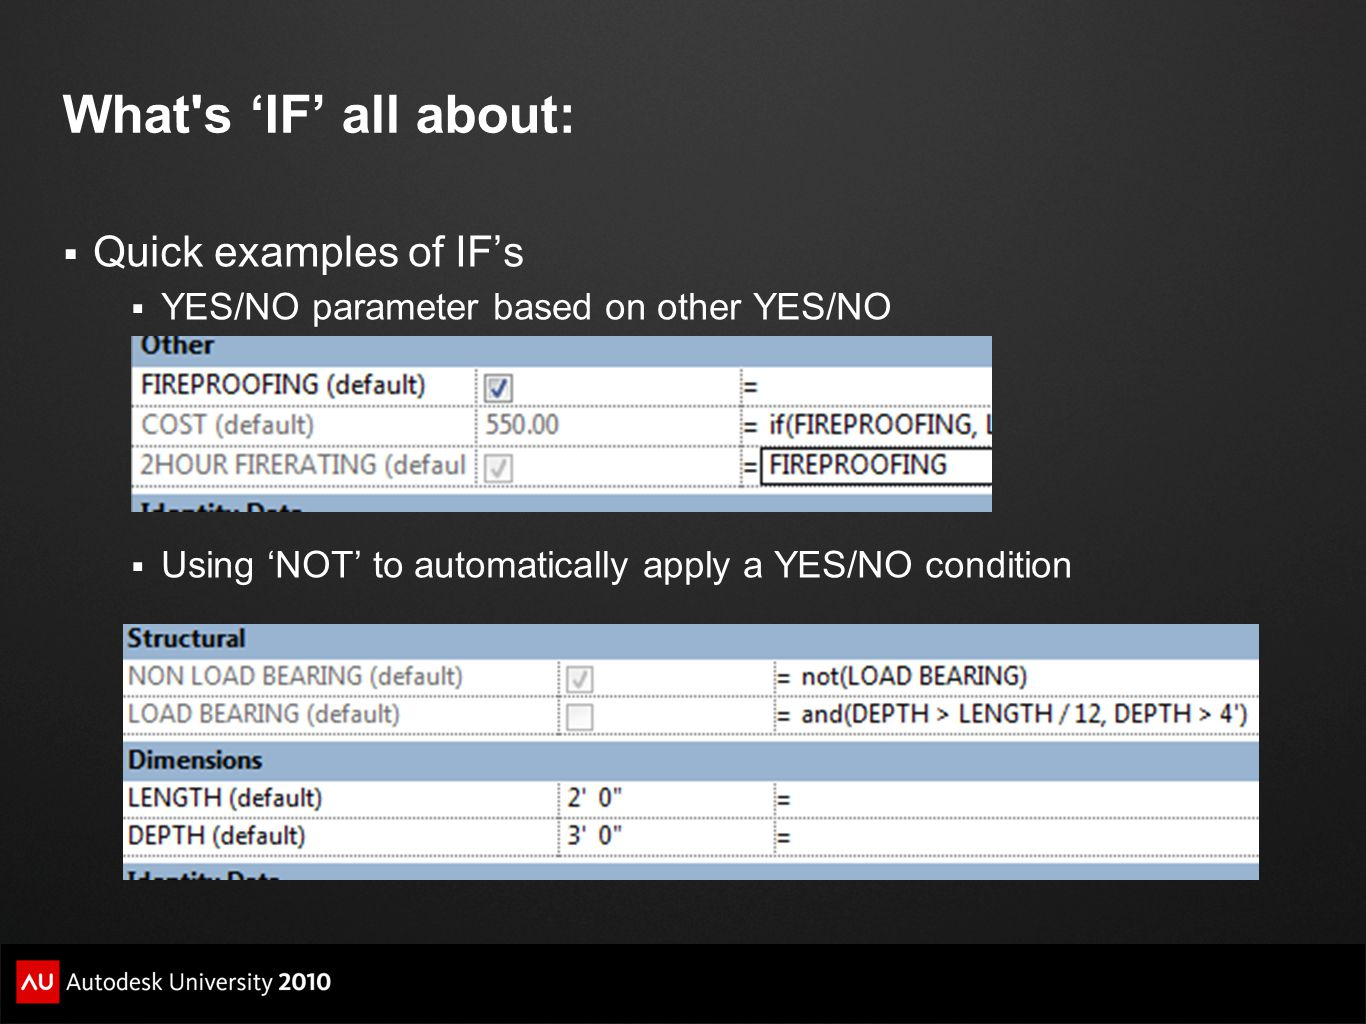 What's 'IF' all about:  Quick examples of IF's  YES/NO parameter based on other YES/NO  Using 'NOT' to automatically apply a YES/NO condition